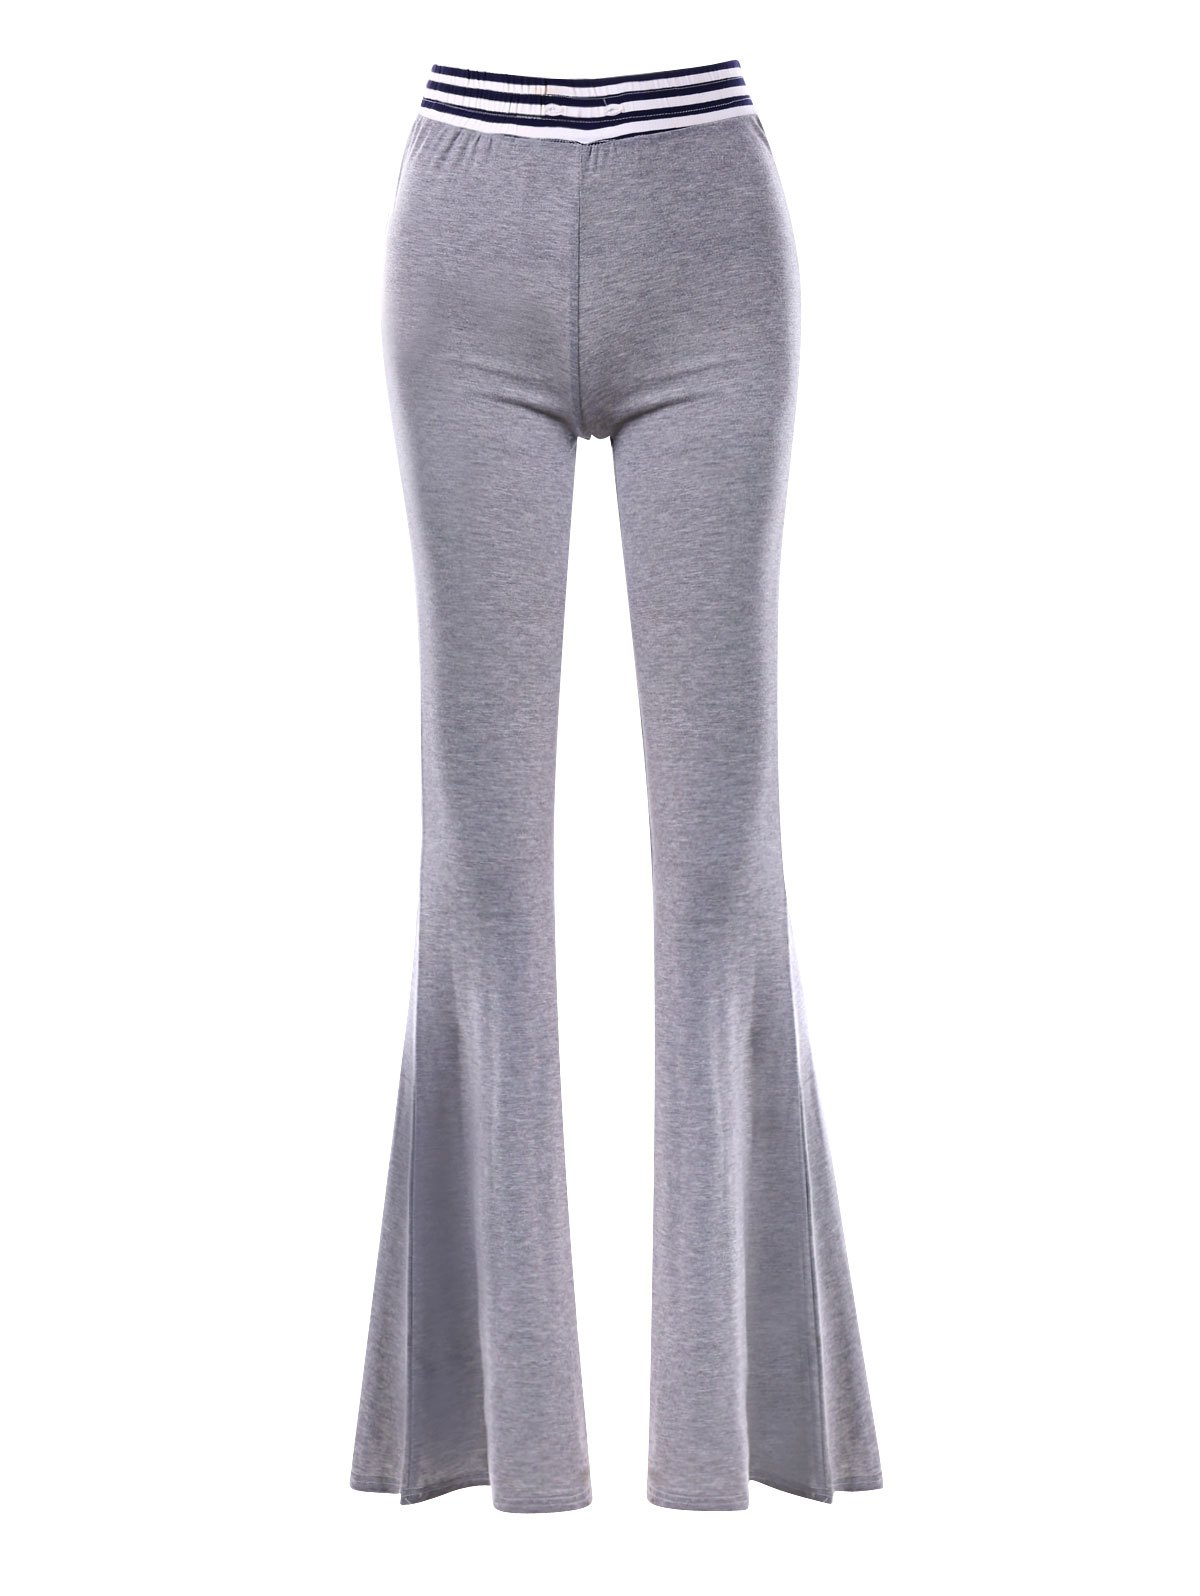 Striped Insert Maxi Flare Pants - GRAY XL